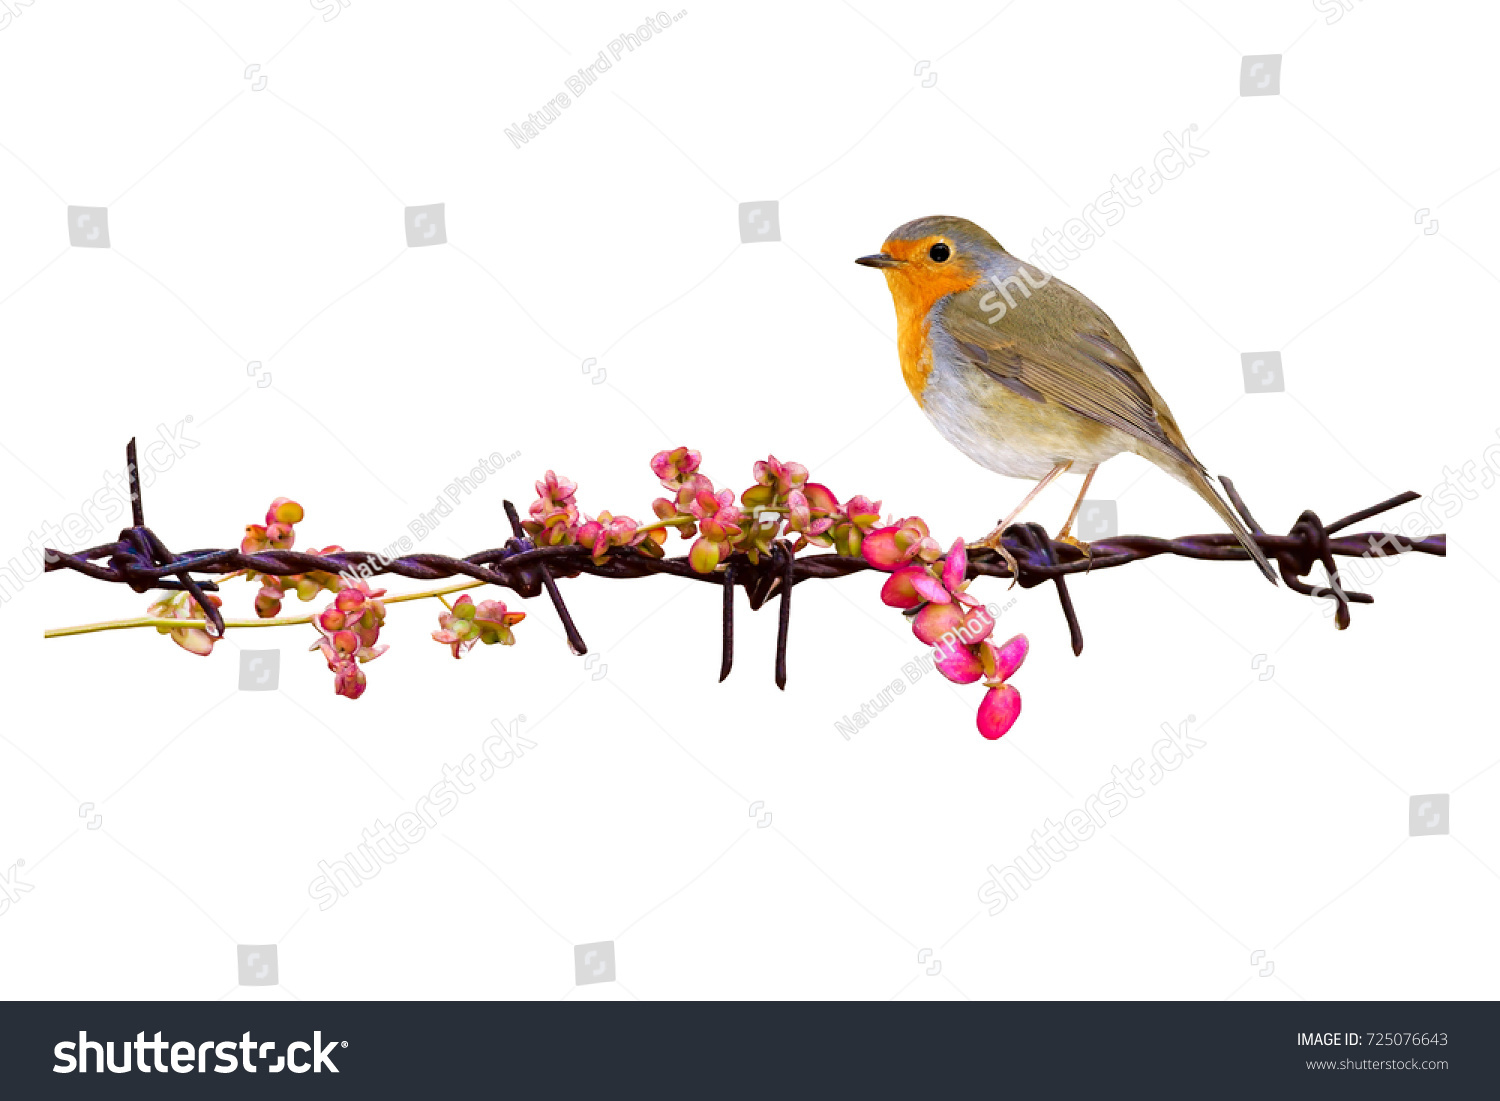 Isolated Cute Bird Barbed Wire White Stock Photo 725076643 ...